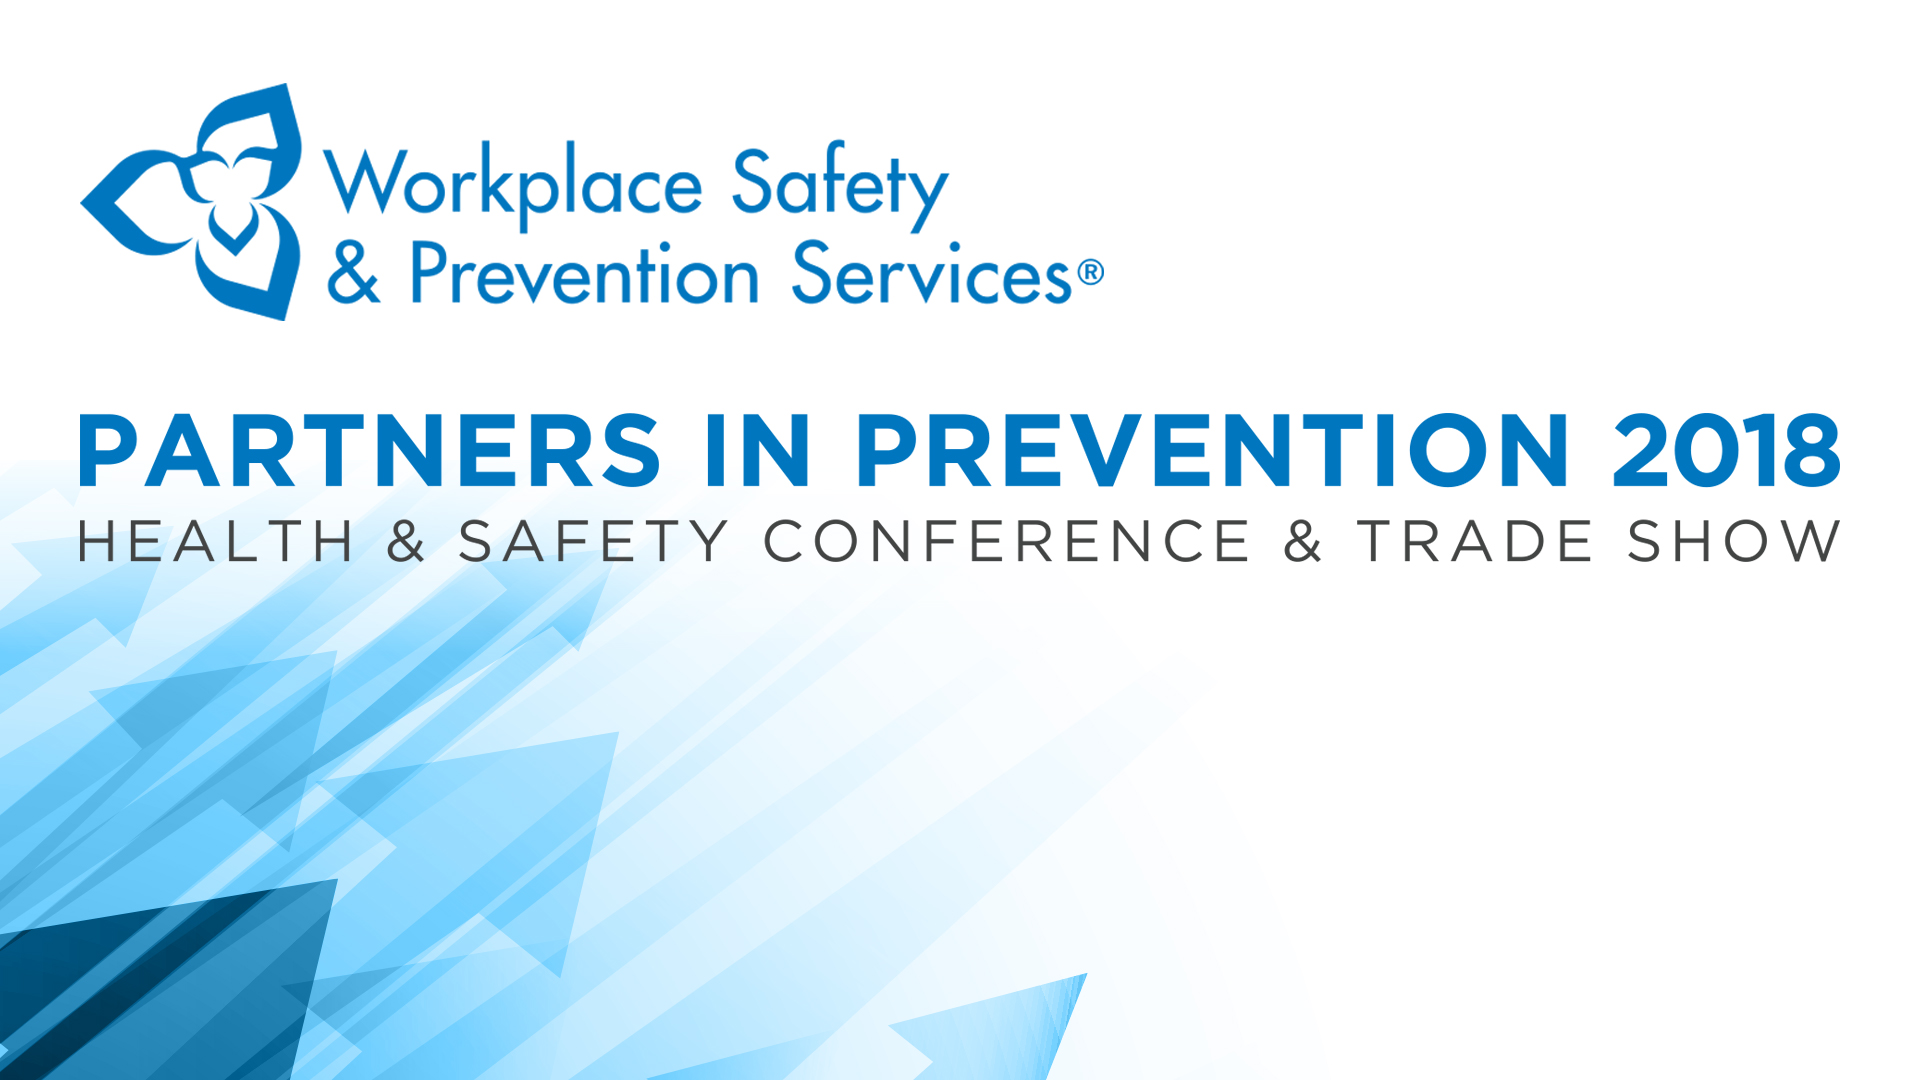 Partners in Prevention 2018 Health & Safety Conference & Trade Show